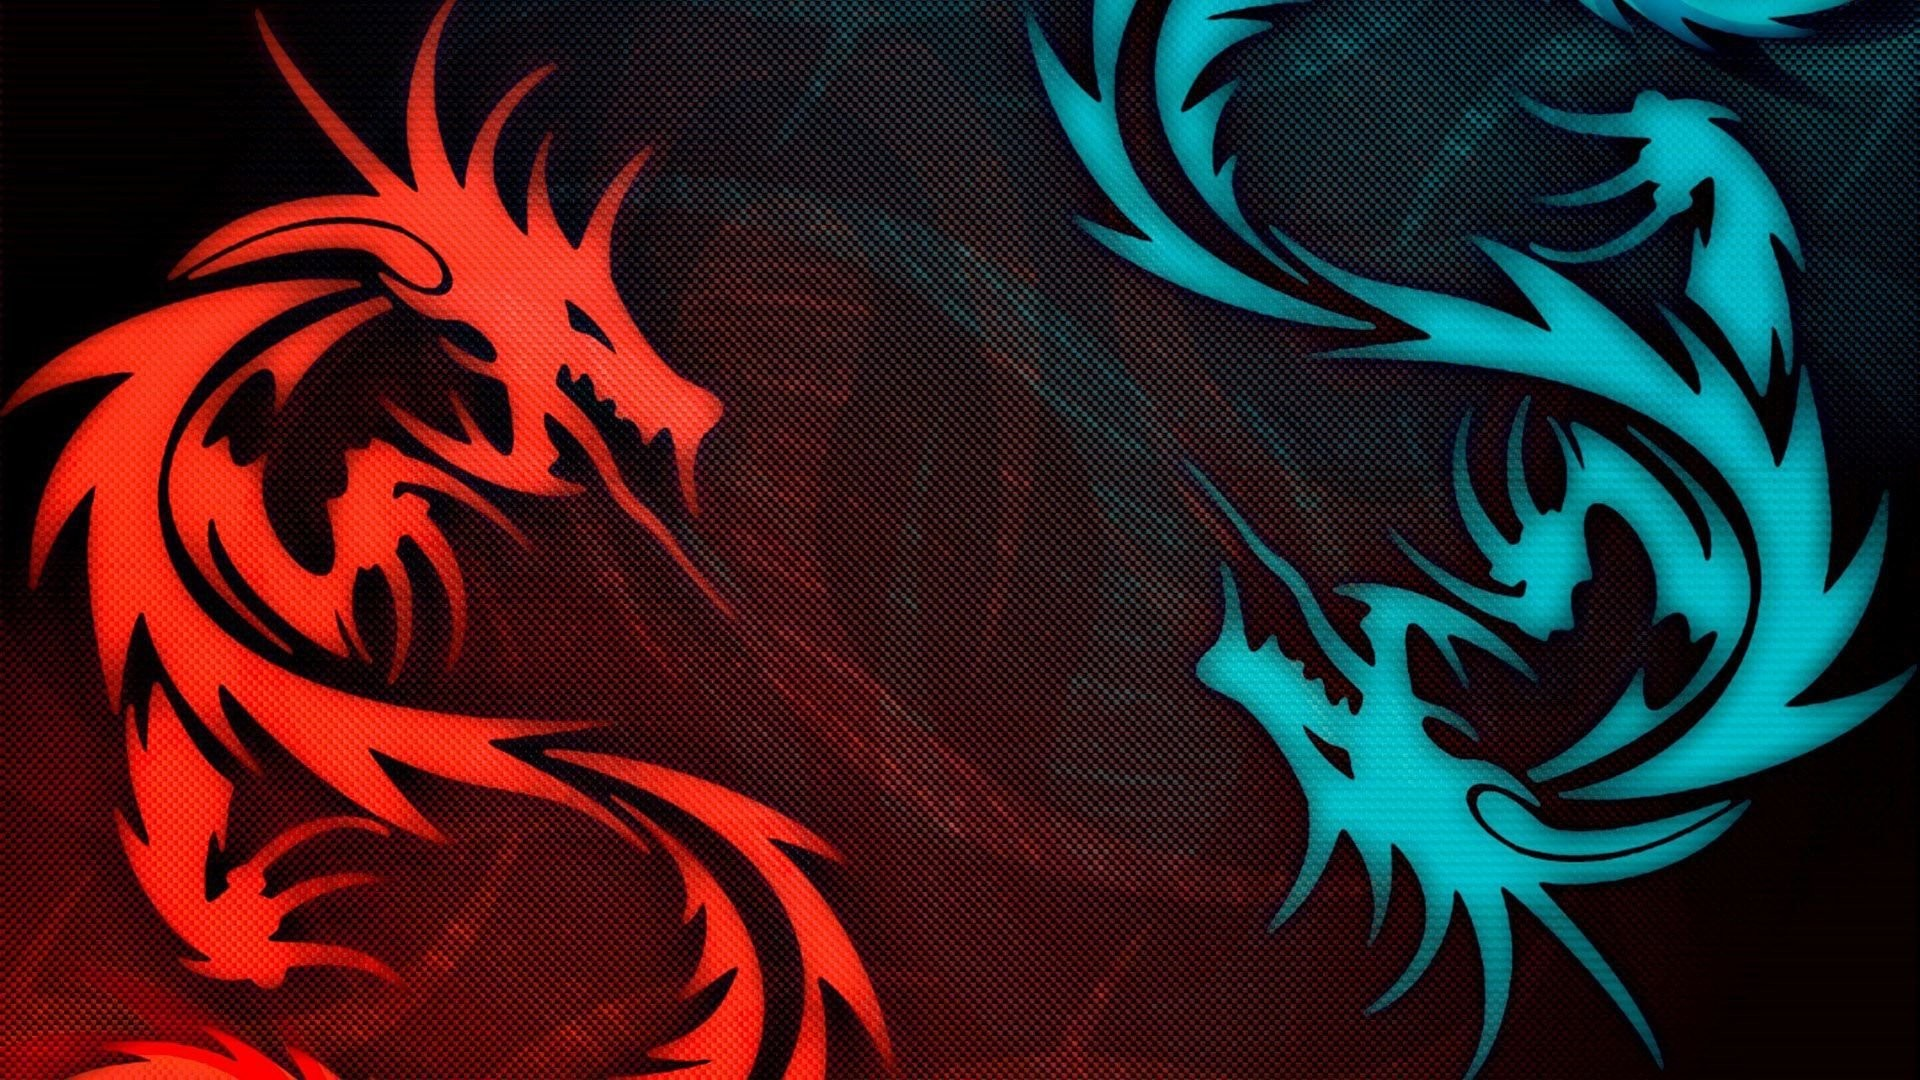 2880x1800 Very High Definition Wallpapers For Desktop